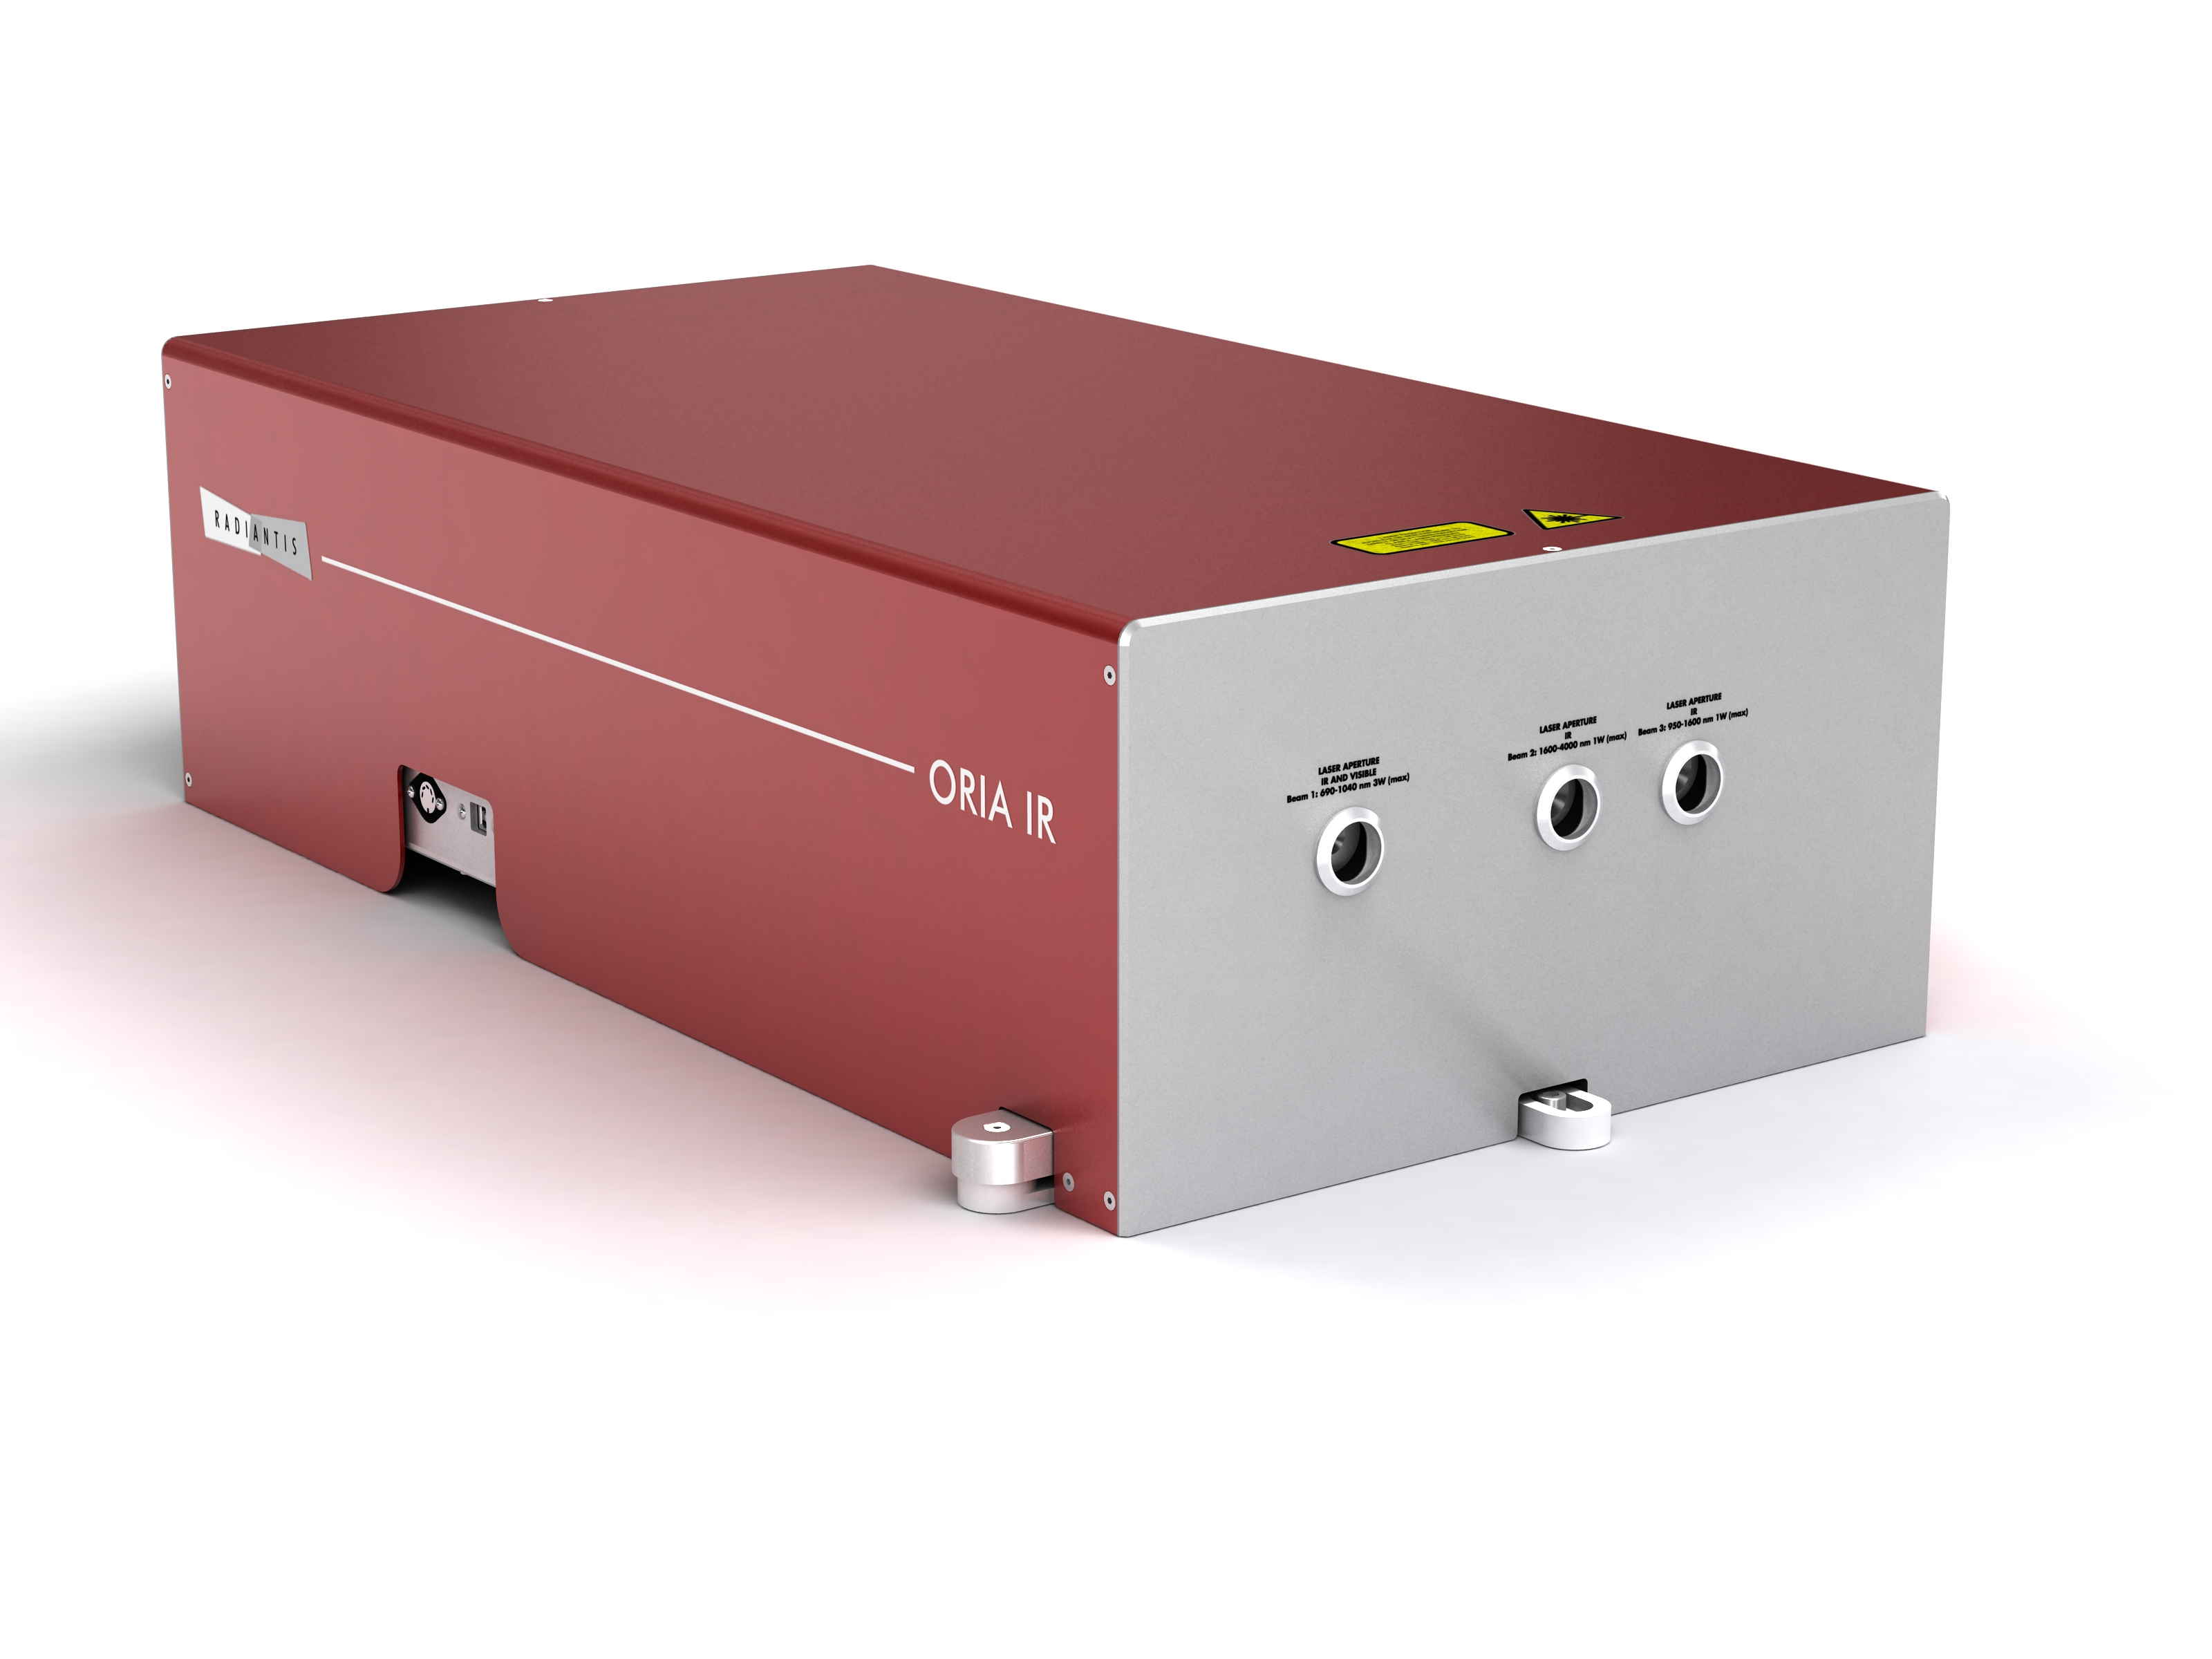 Oria IR OPO - Automated Infrared Wavelength Extension for Femtosecond Ti:sapphire Lasers